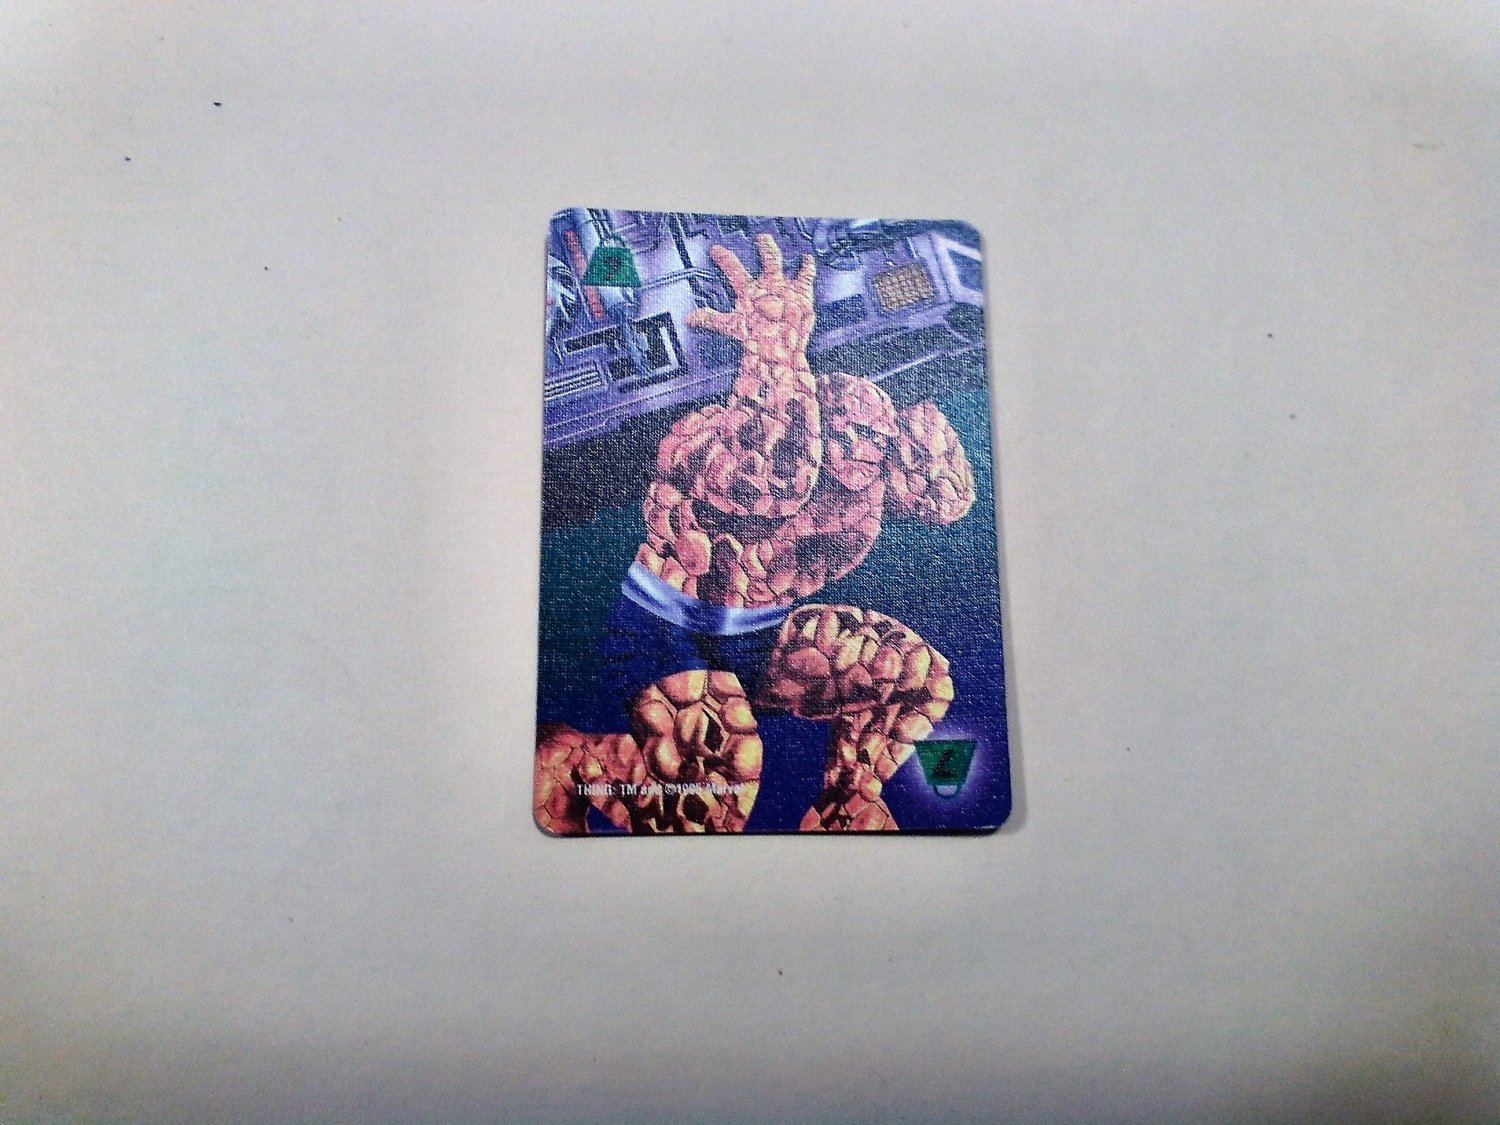 Marvel OverPower - Thing No. 303 - S7 Common, Power Card (1995) Fleer